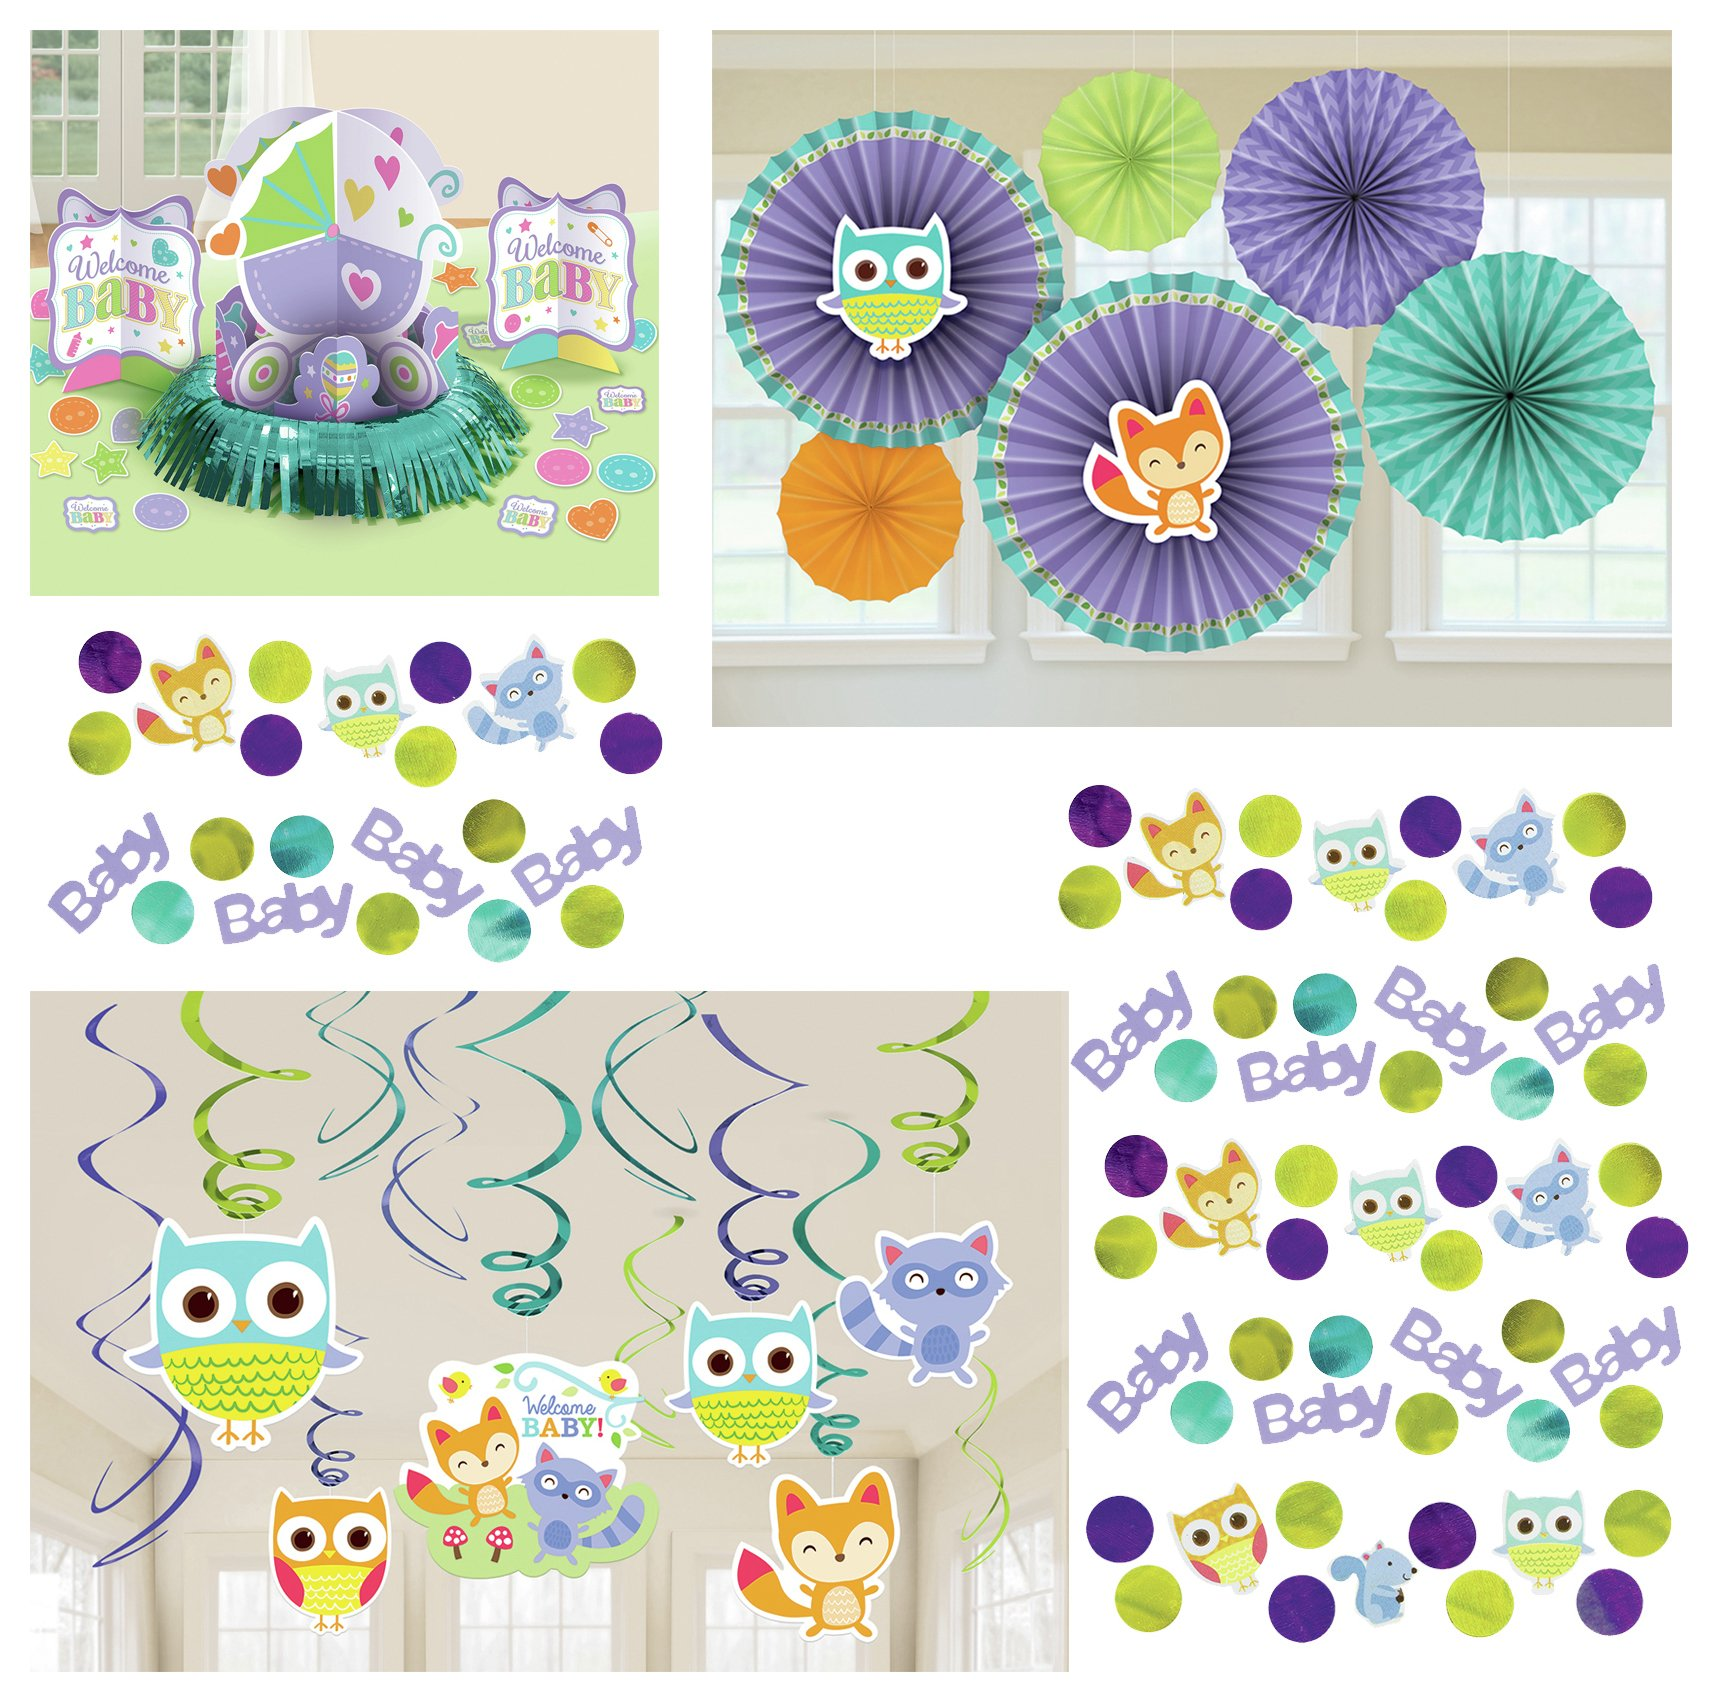 Image of Baby Shower Woodland Decorating Accessory Pack.